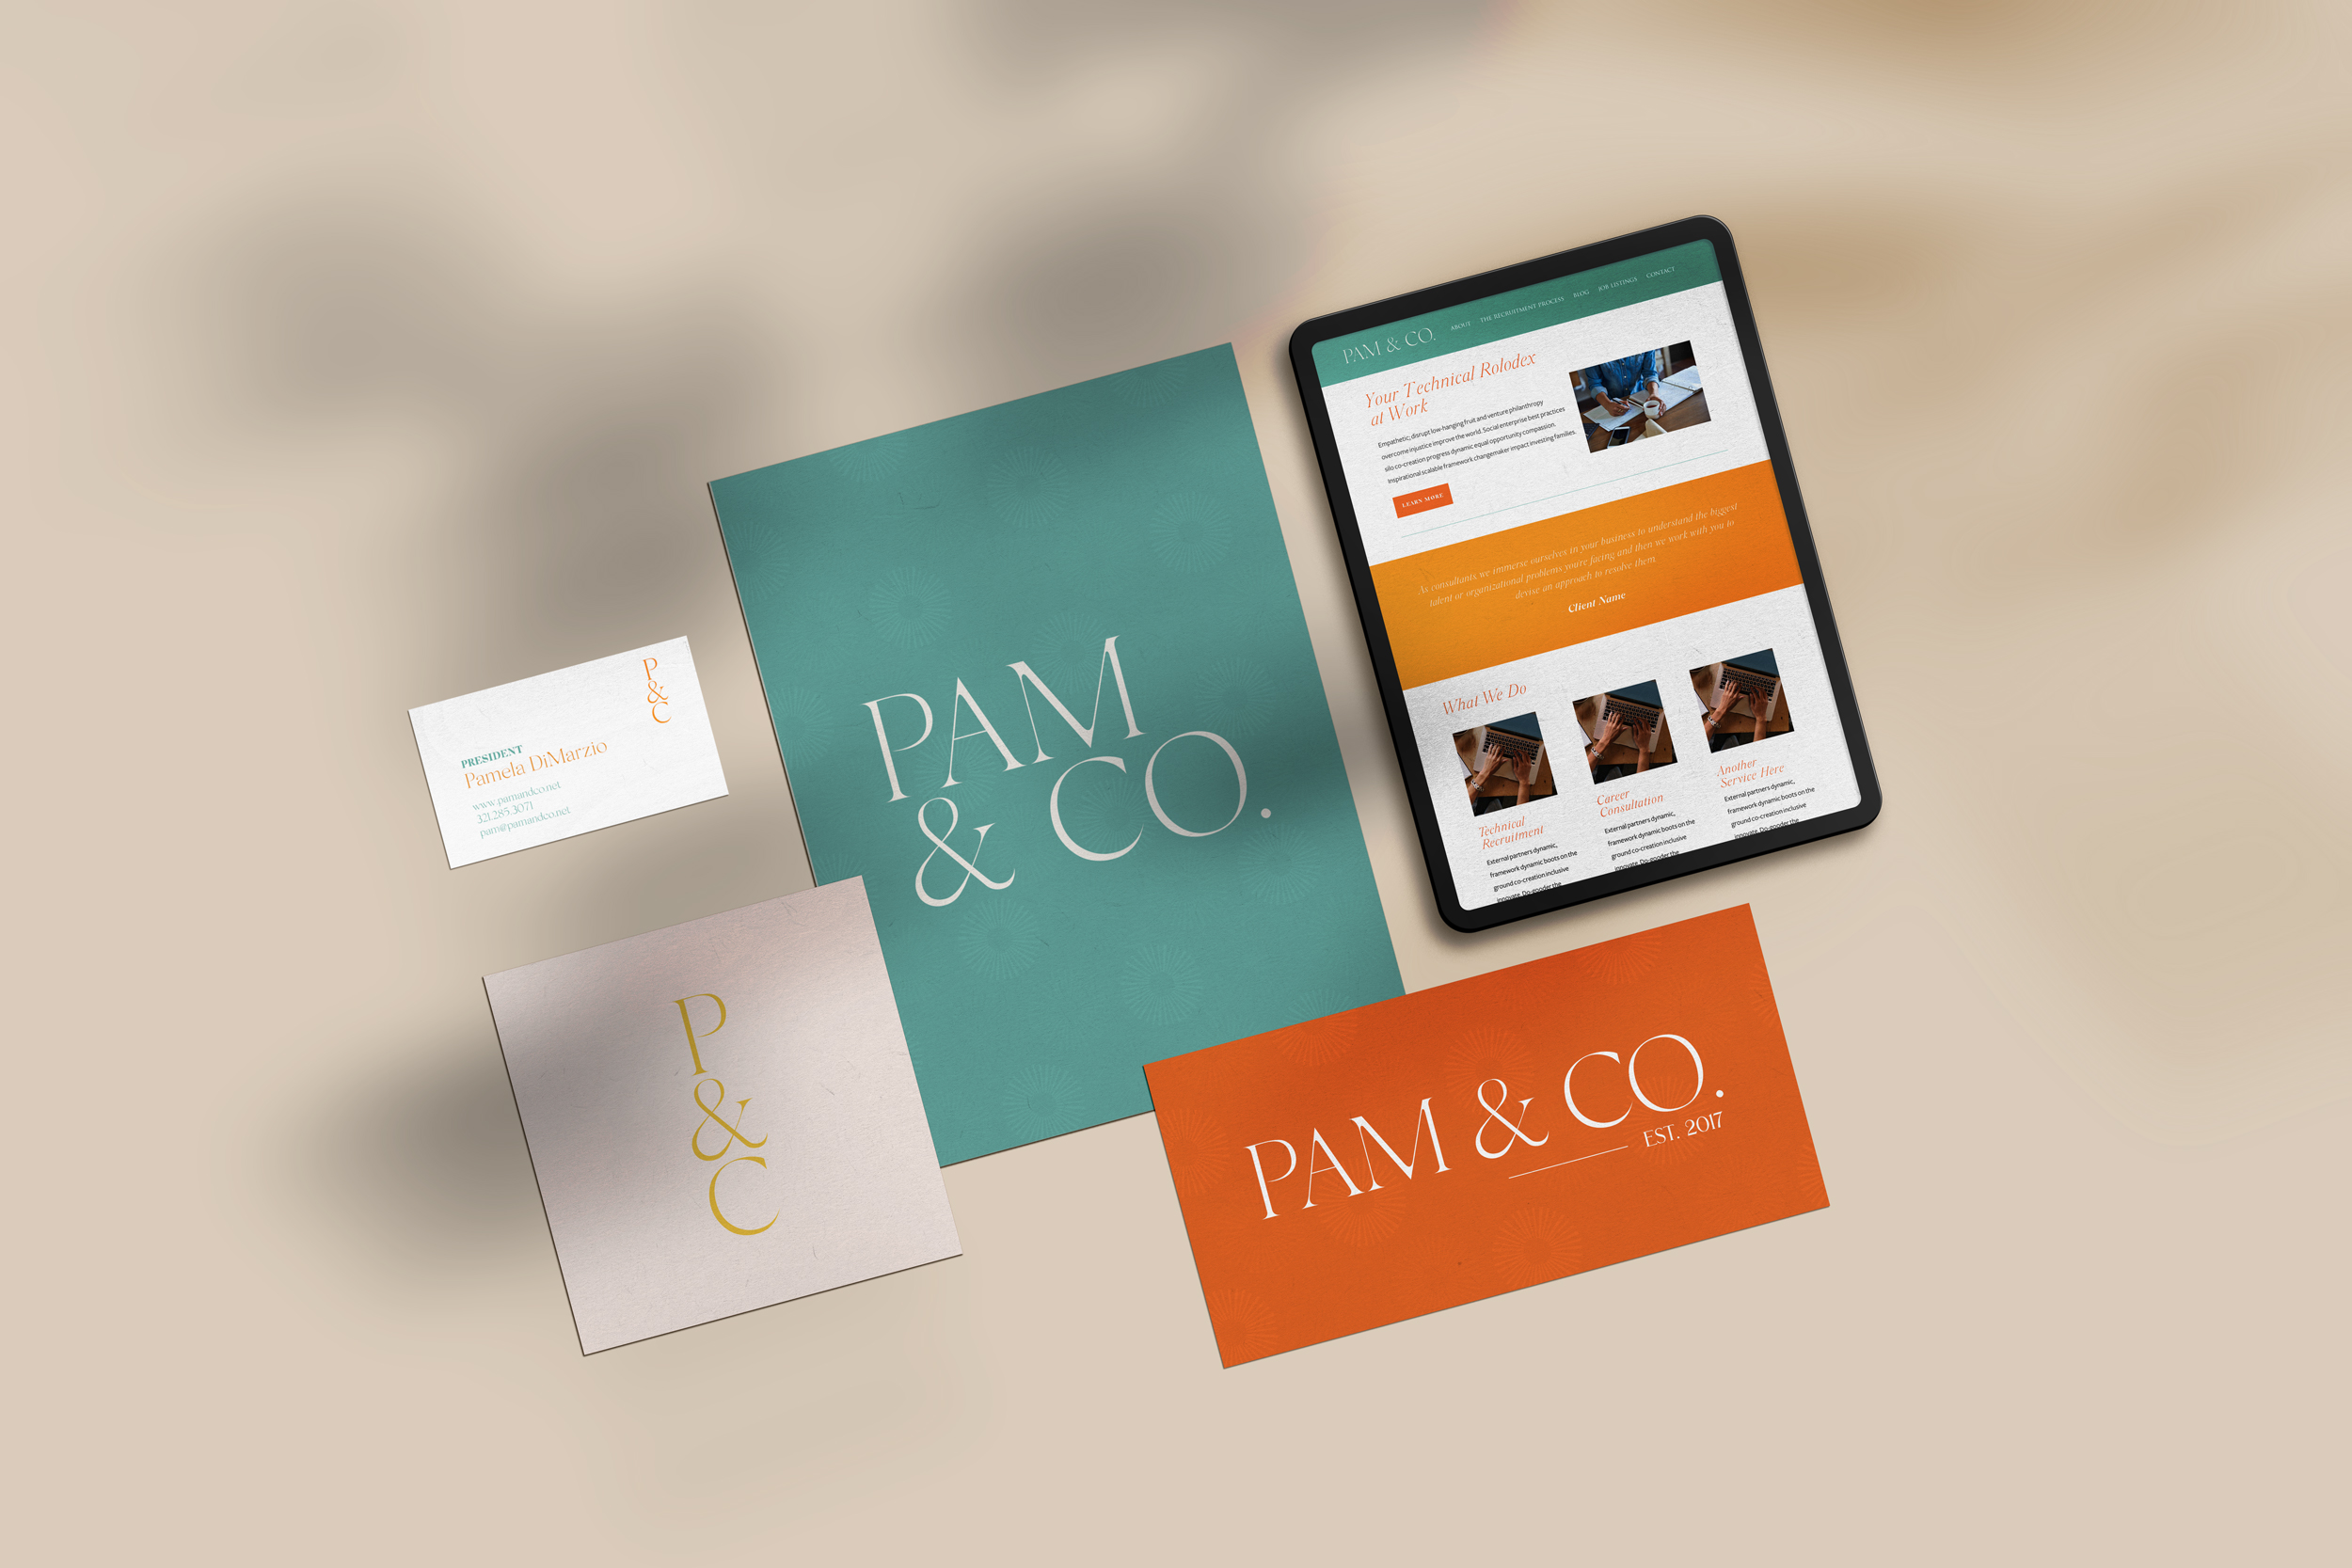 Mockups of Pam & Co print and web designs